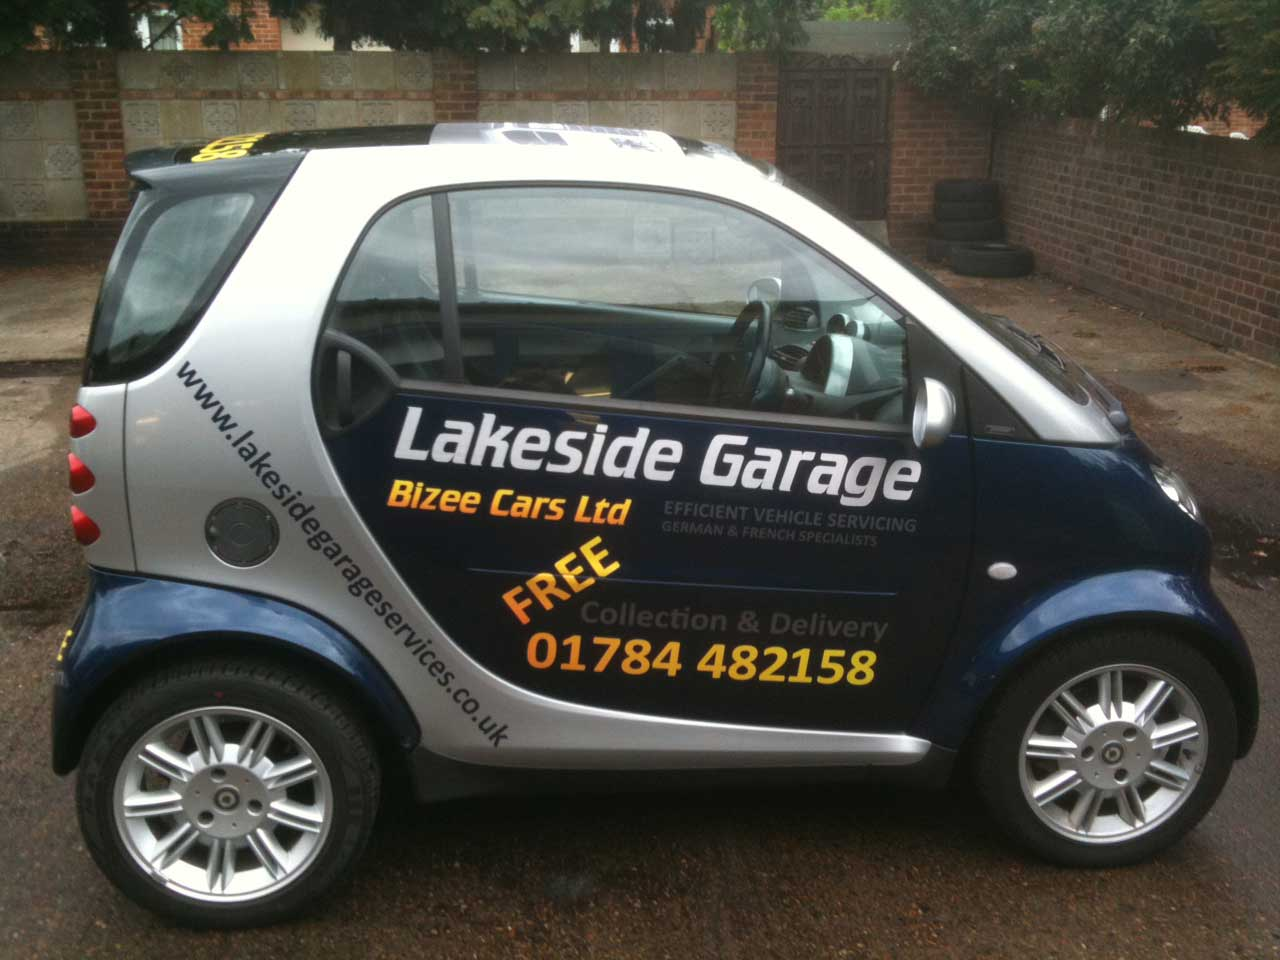 One of our fleet of collection cars